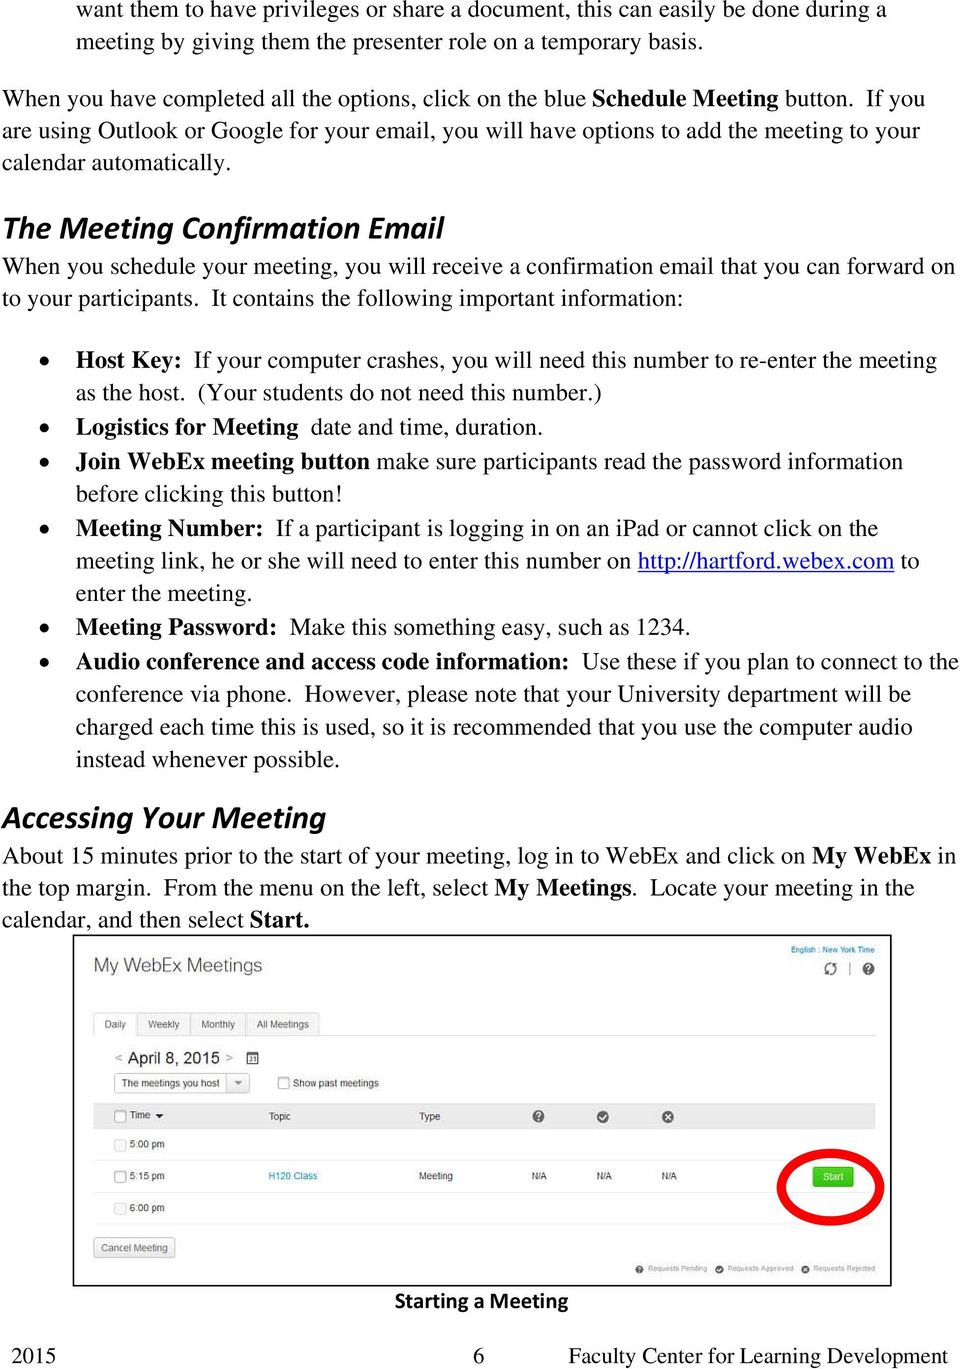 If you are using Outlook or Google for your email, you will have options to add the meeting to your calendar automatically.